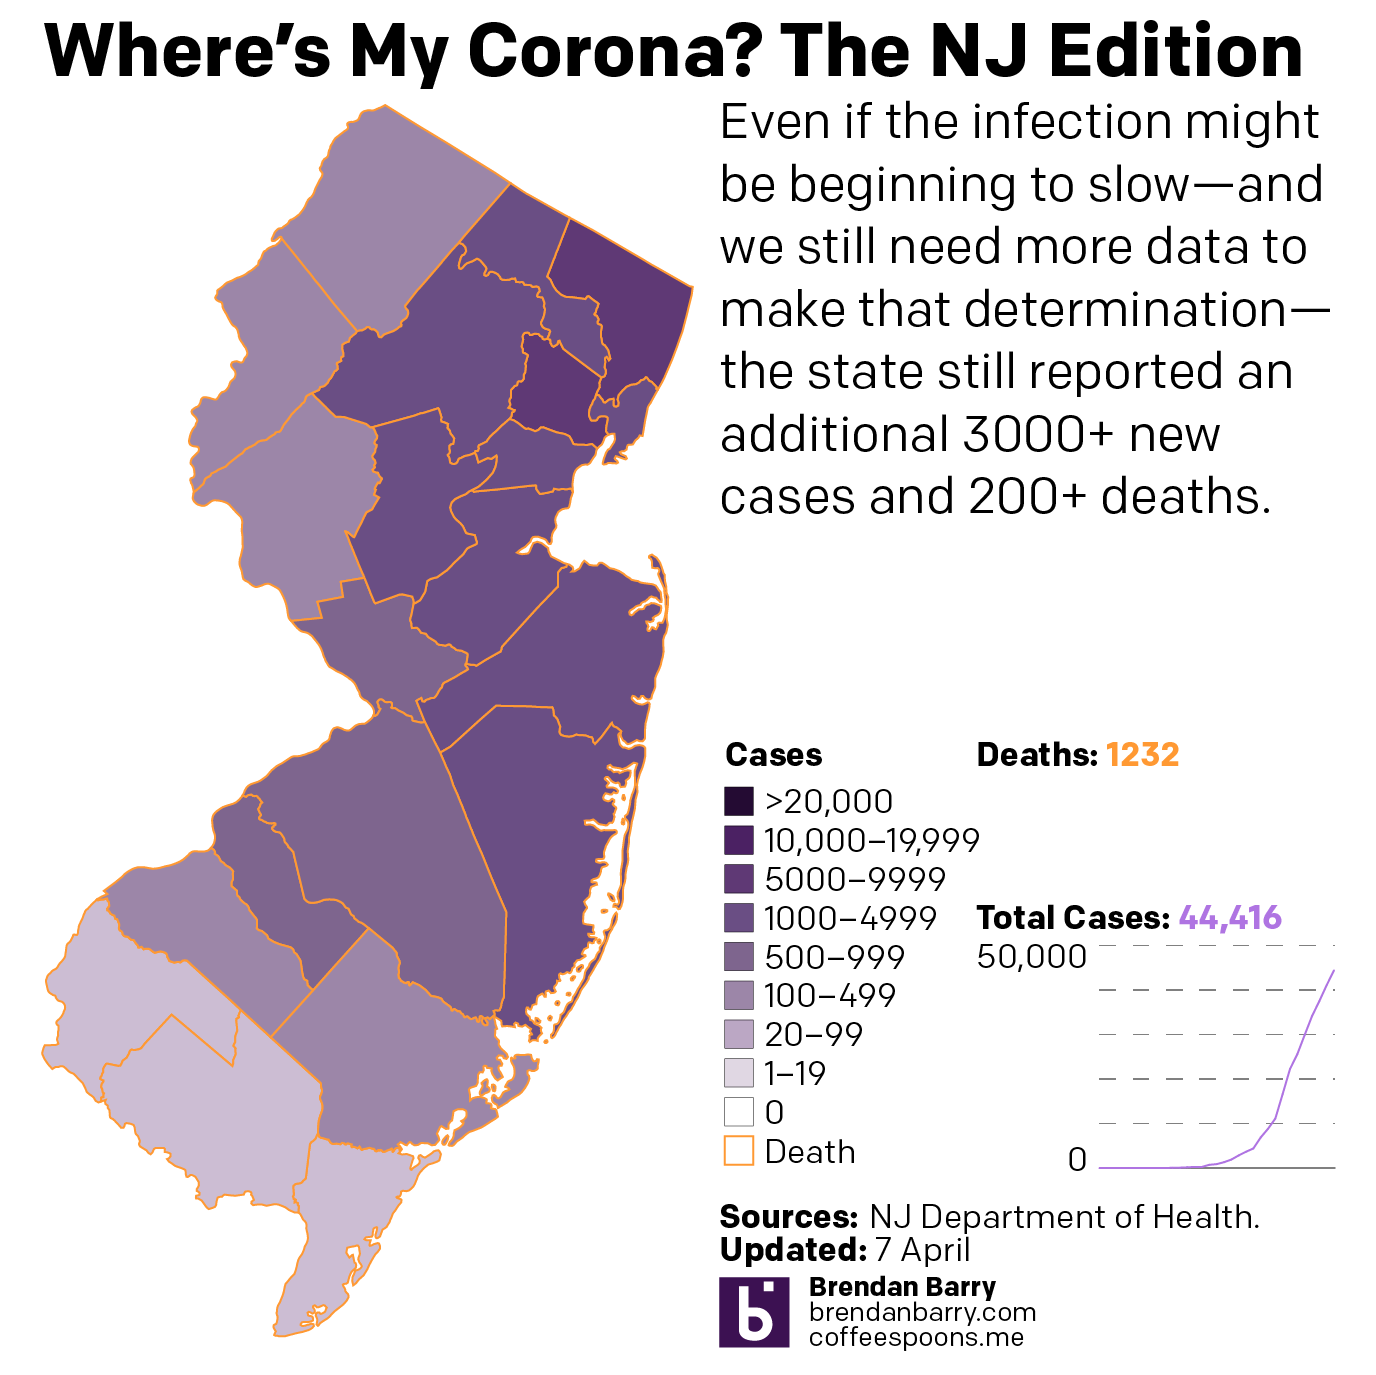 The condition in New Jersey